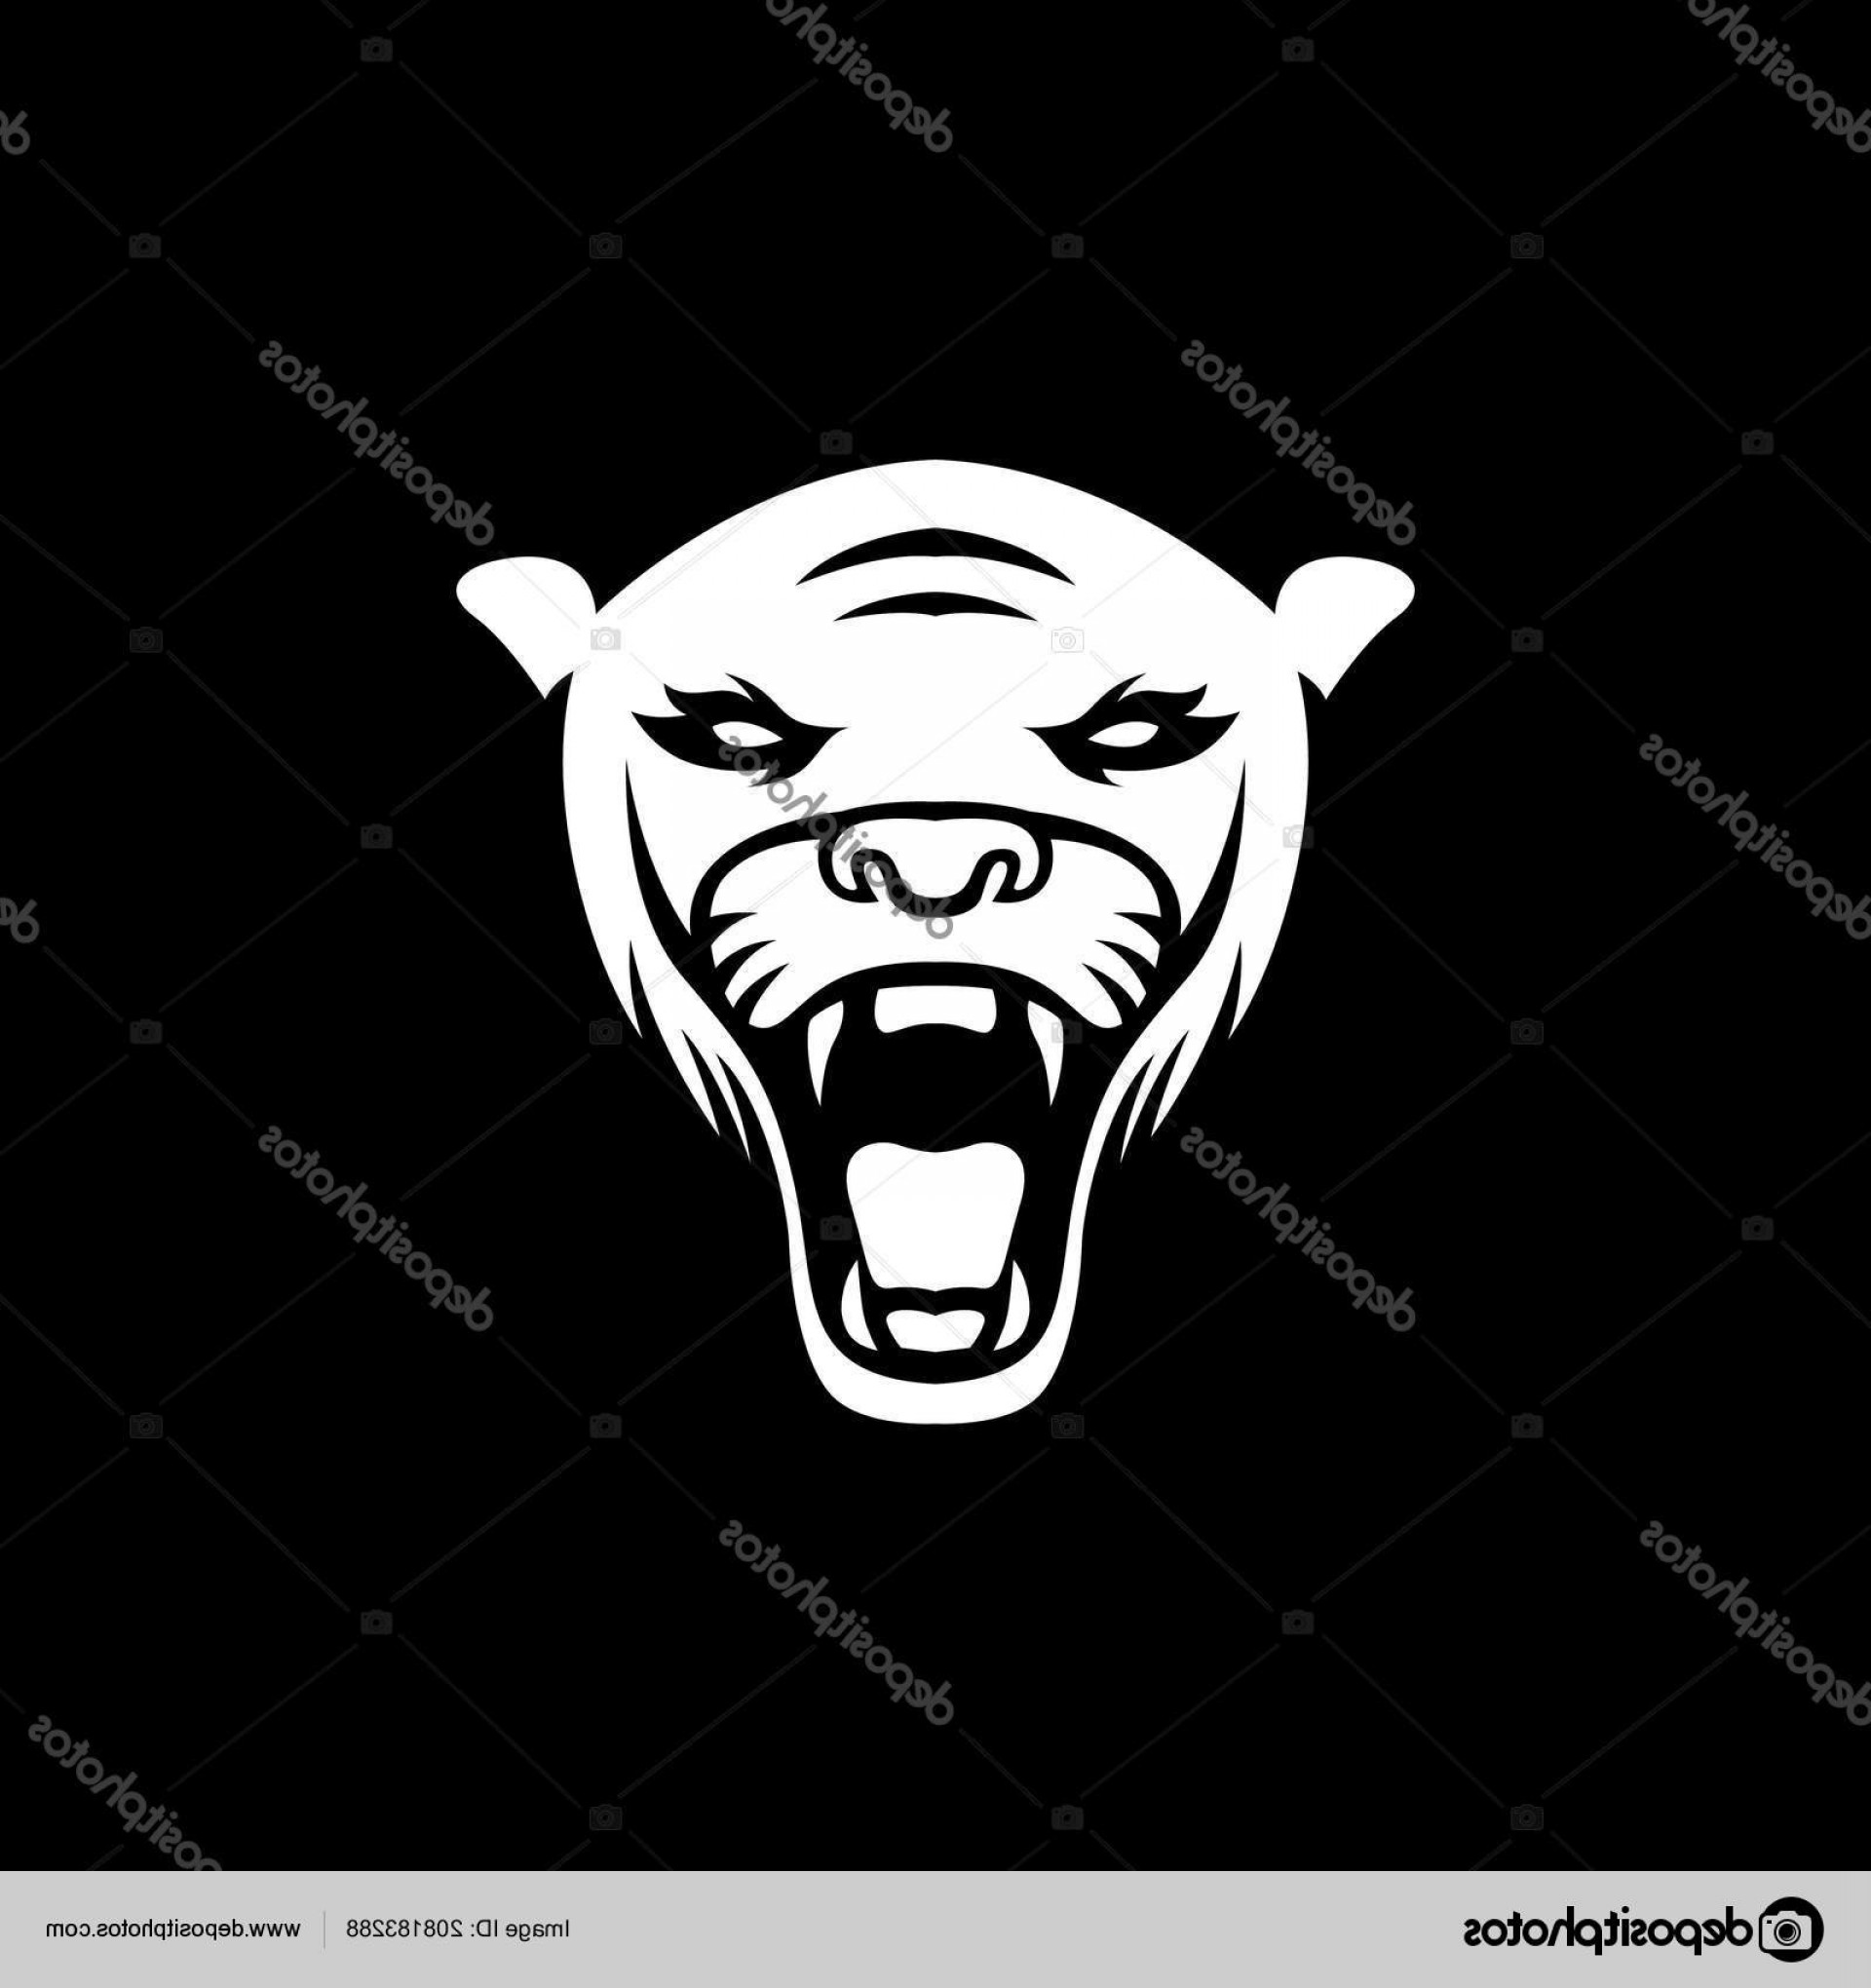 Panther Mascot Vector Sports: Stock Illustration Panther Logo Mascot Design Illustration